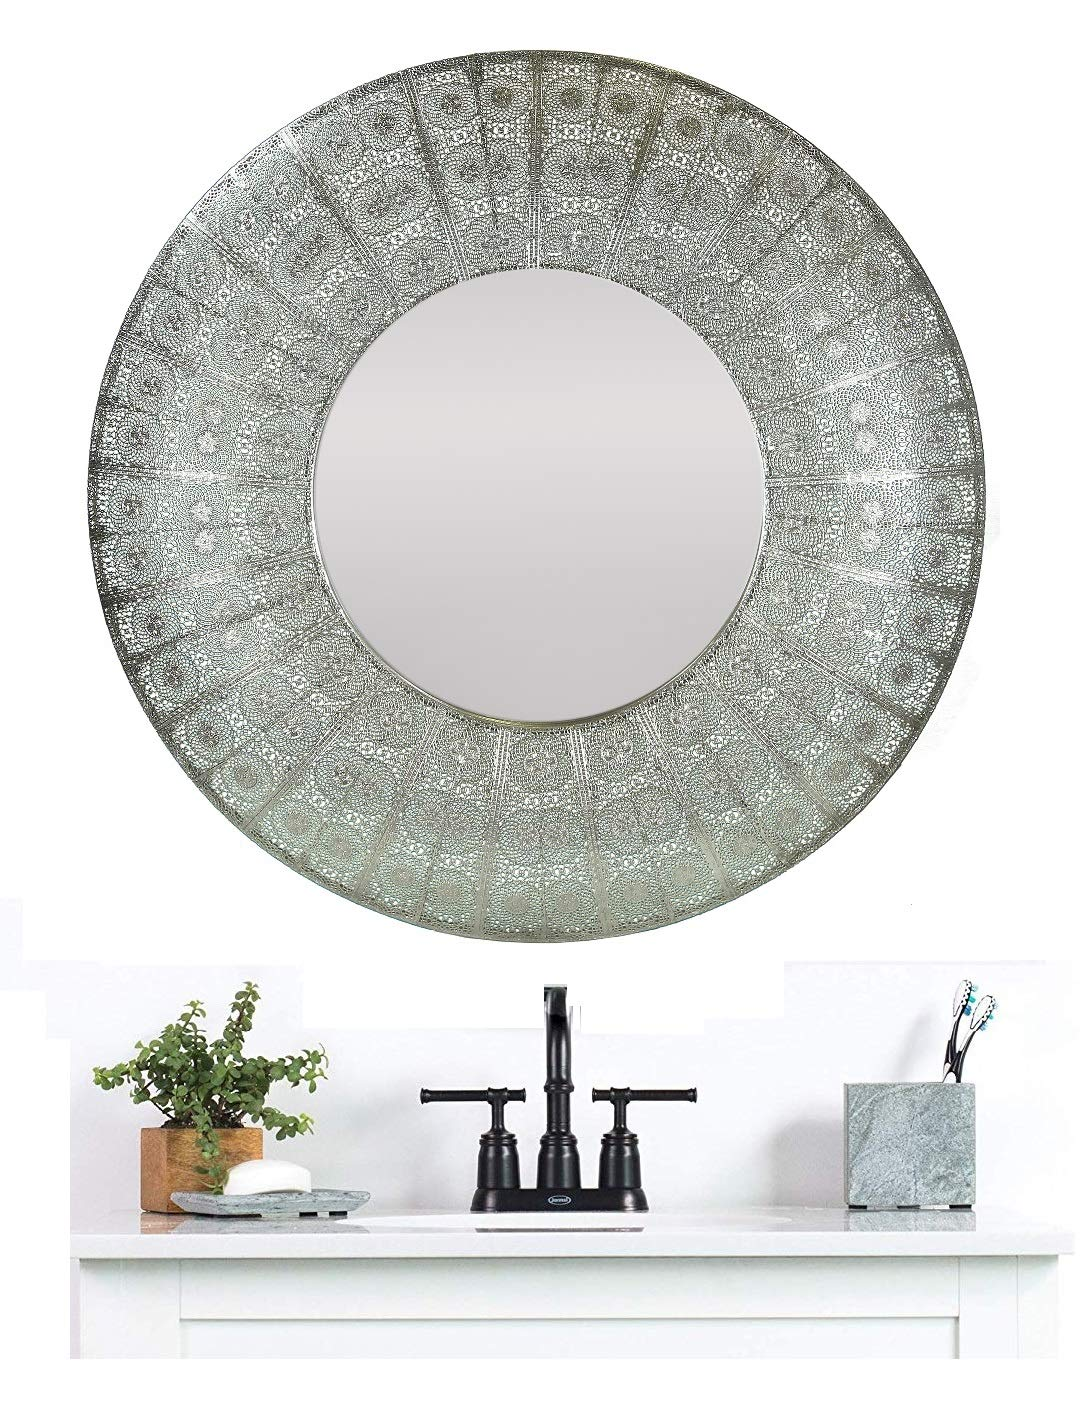 Black Round Wall Mirror 24 Inch Large Round Mirror Rustic Accent Mirror For Bathroom Entry Dining Room Living Room Metal Black Round Mirror For